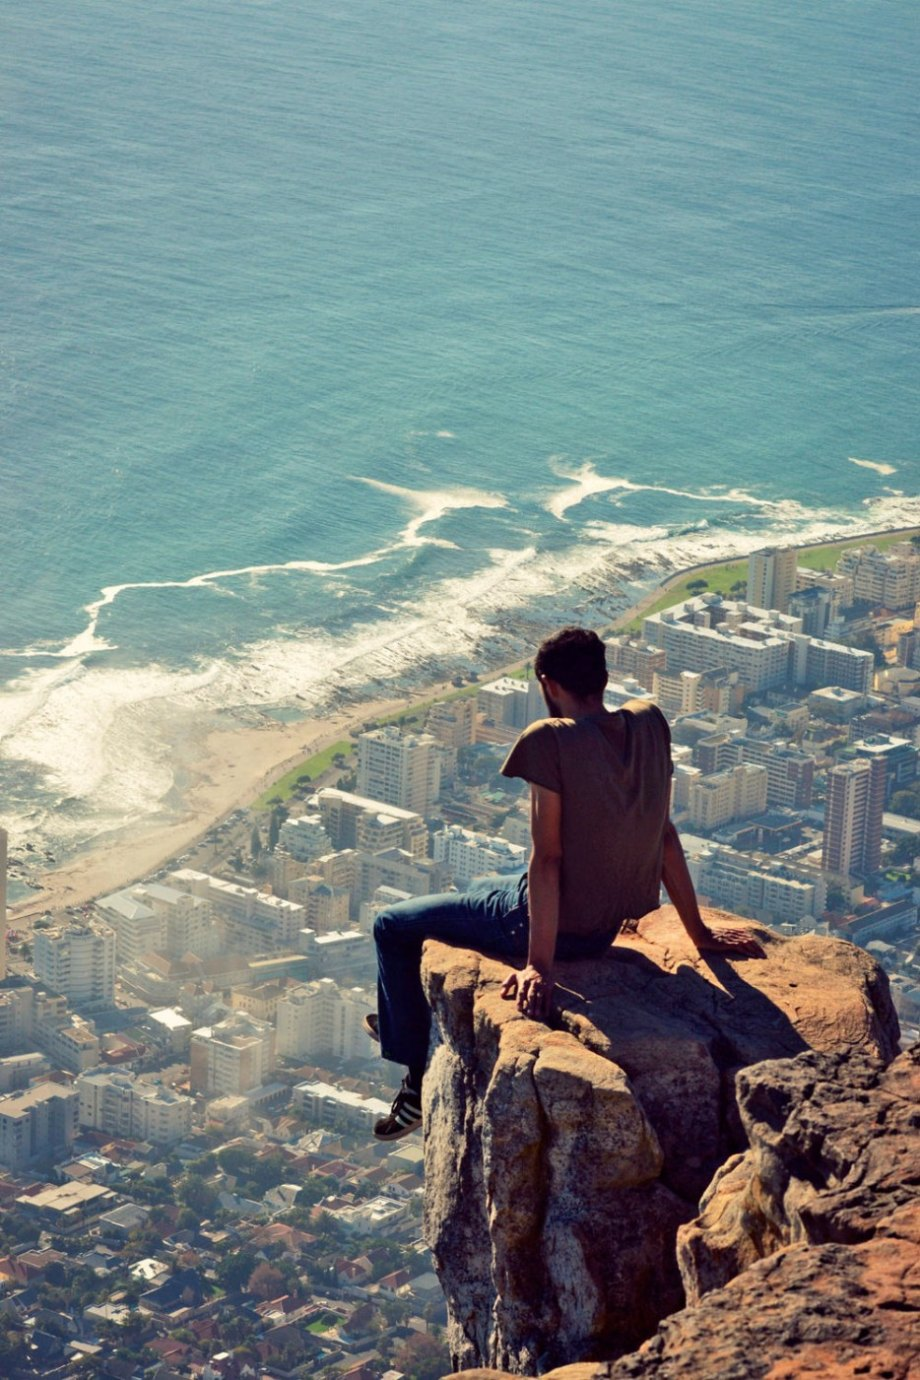 Lion's Head overlooks Cape Town and completely eclipses man made structures at 2,200 feet tall. From the summit of the mountain, you can see a majority of the sprawling city.